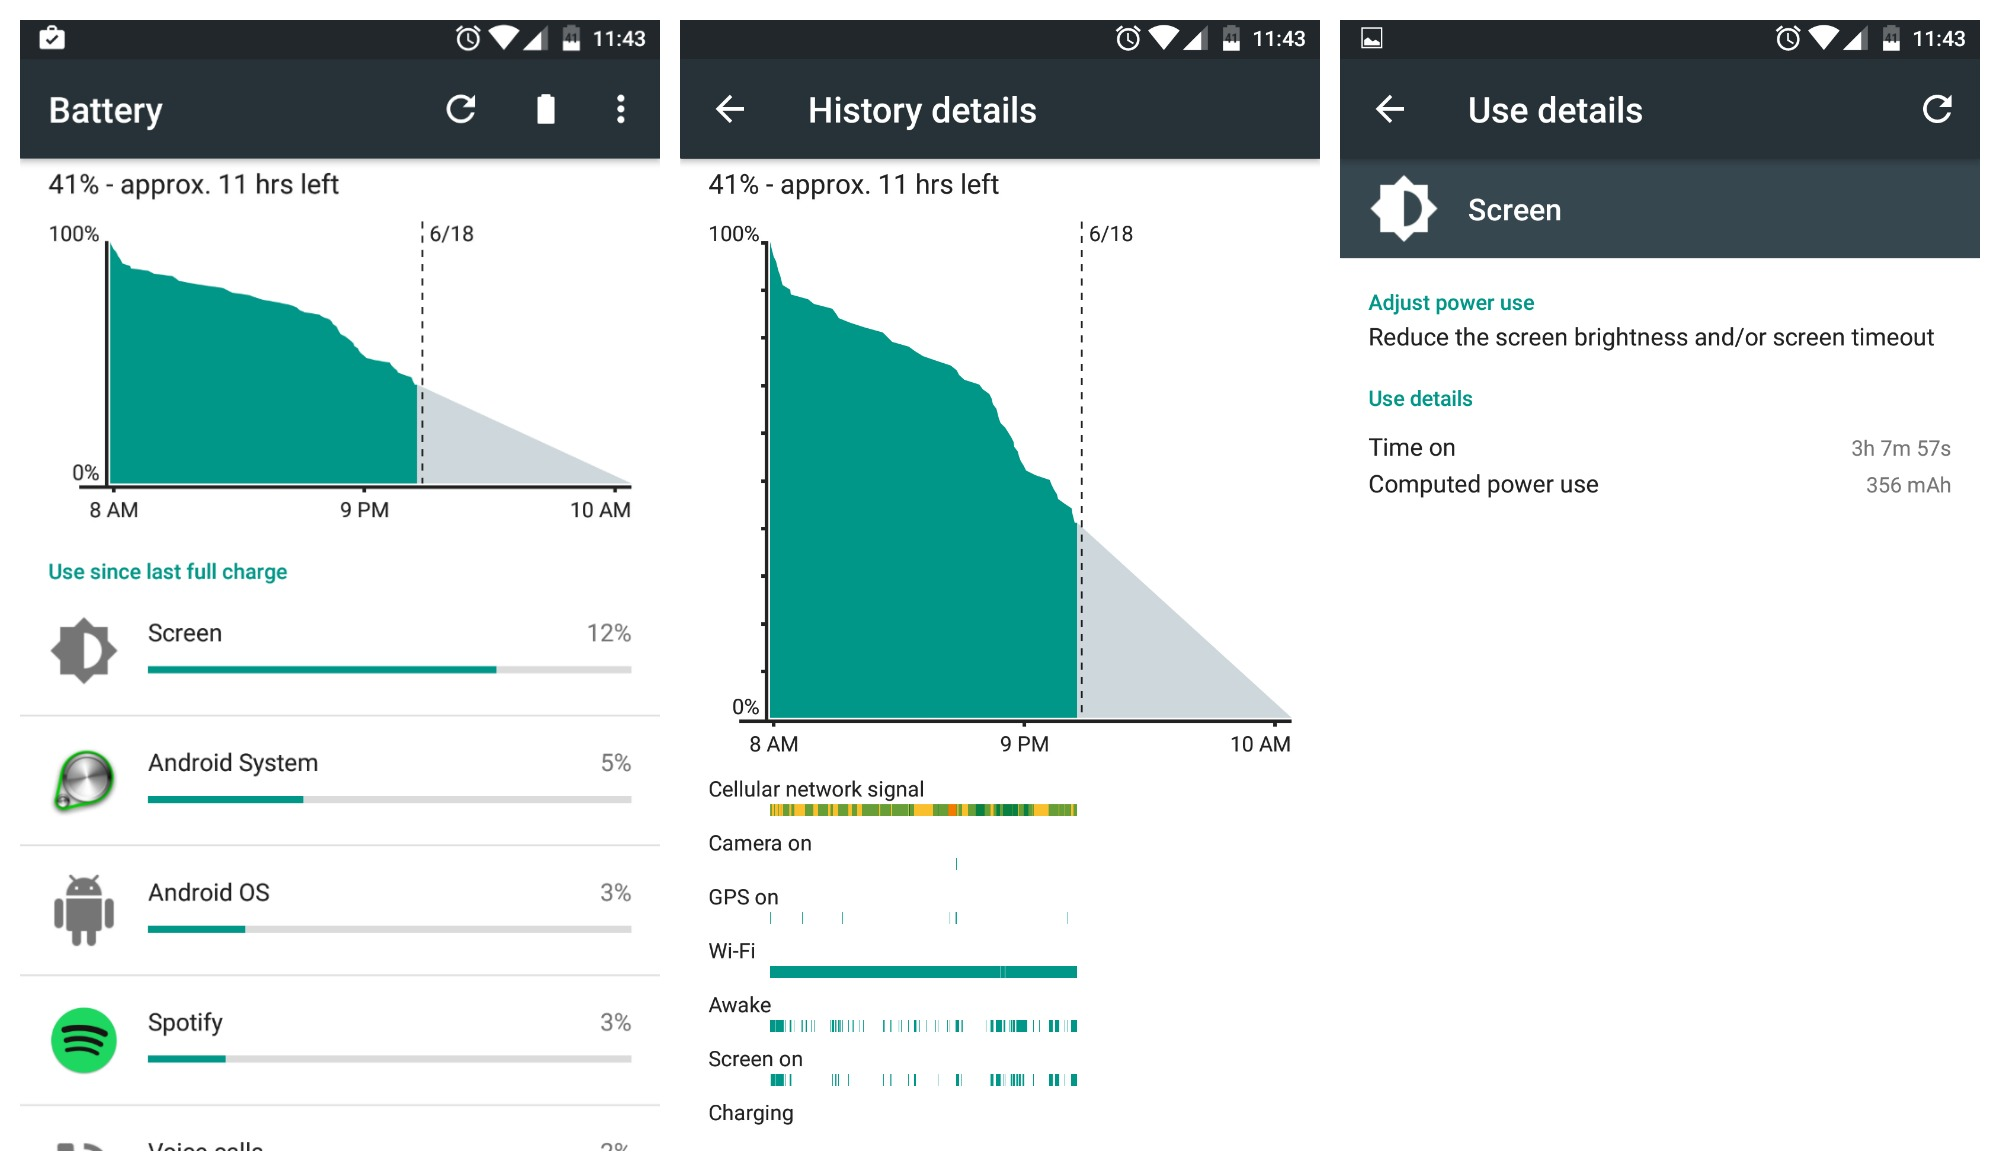 oneplus 3t battery